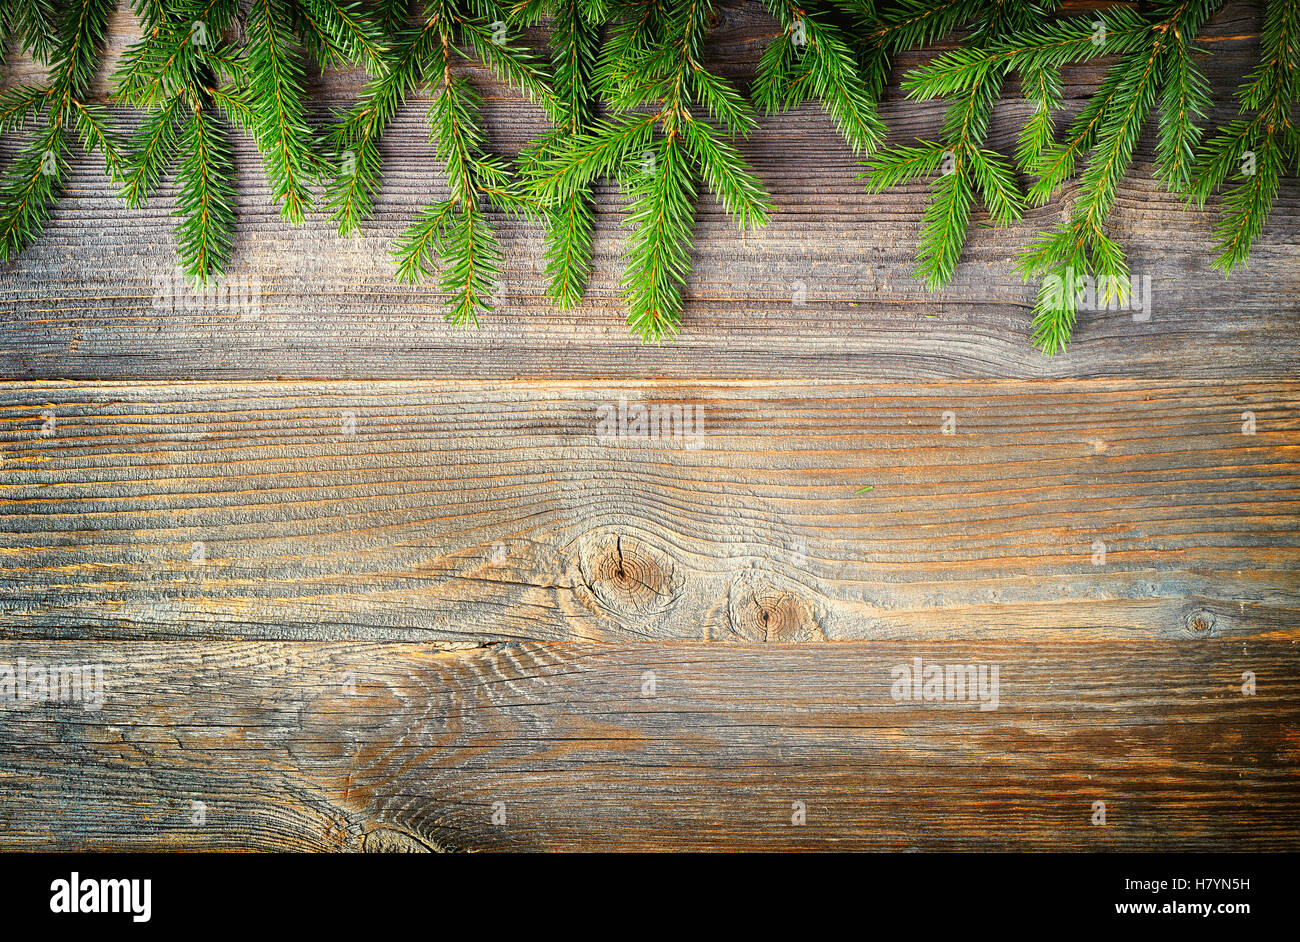 Christmas fir tree or spruce branches on wooden background, top view - Stock Image